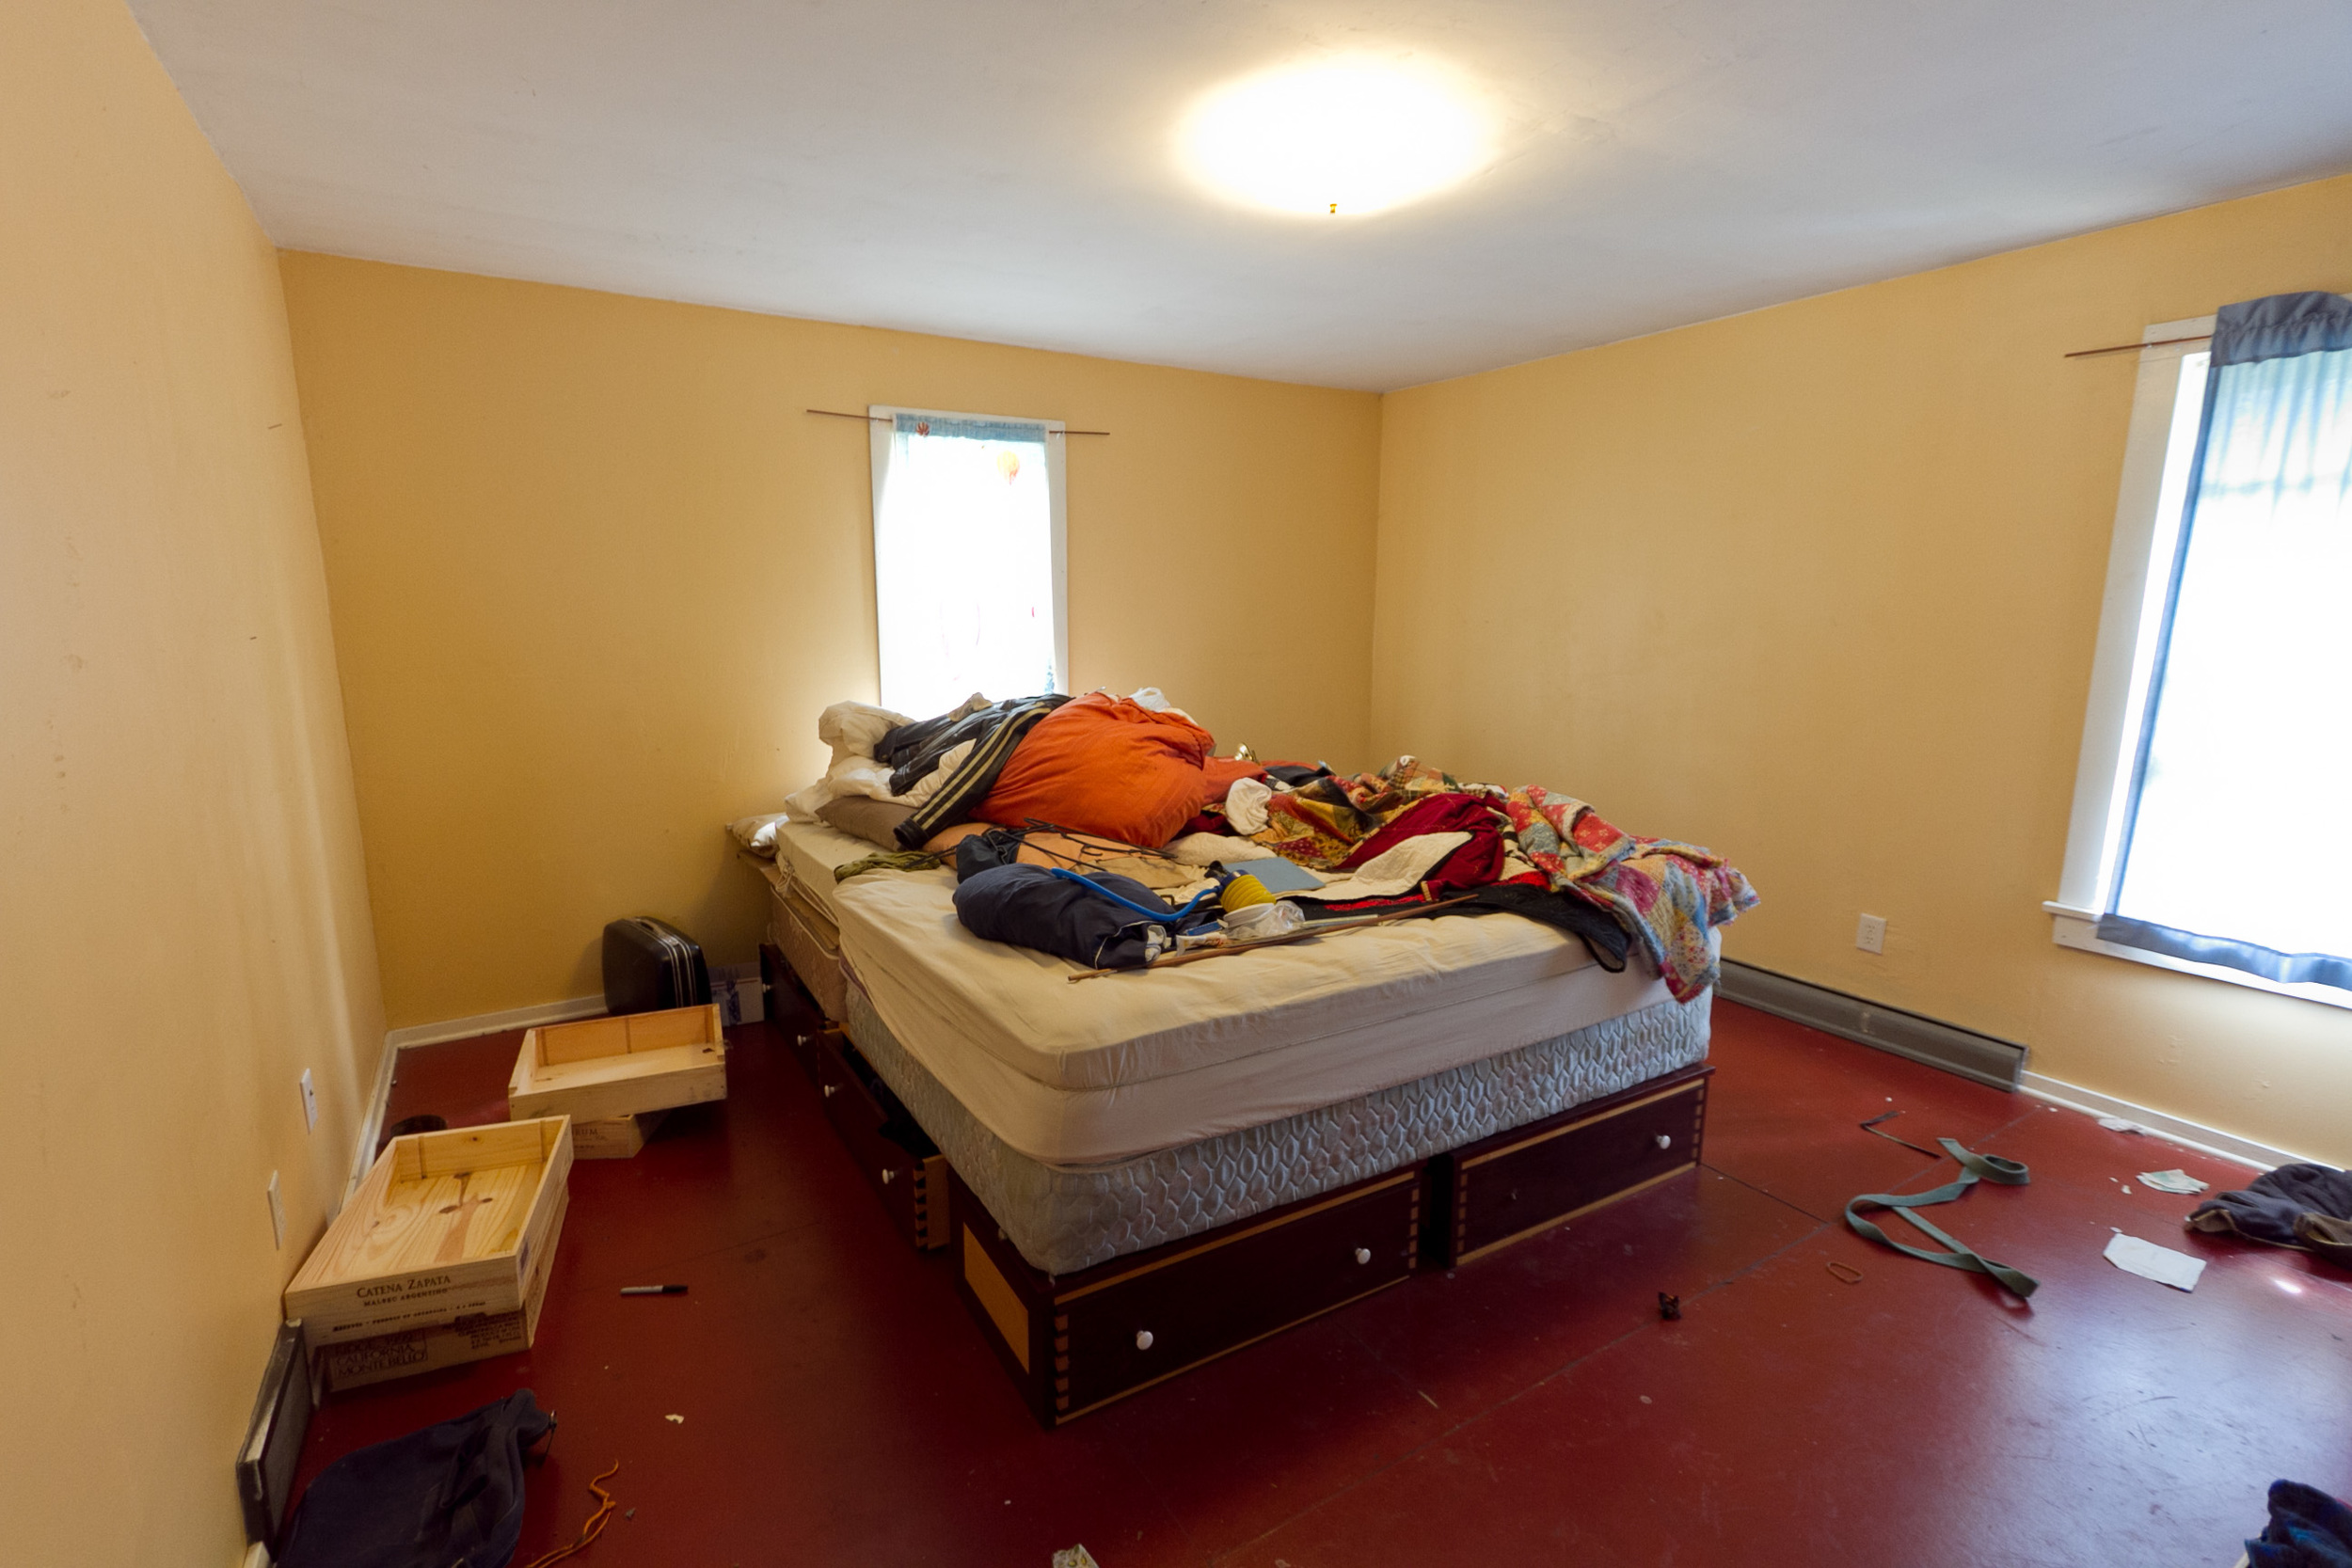 Master bedroom, before being staged for sale